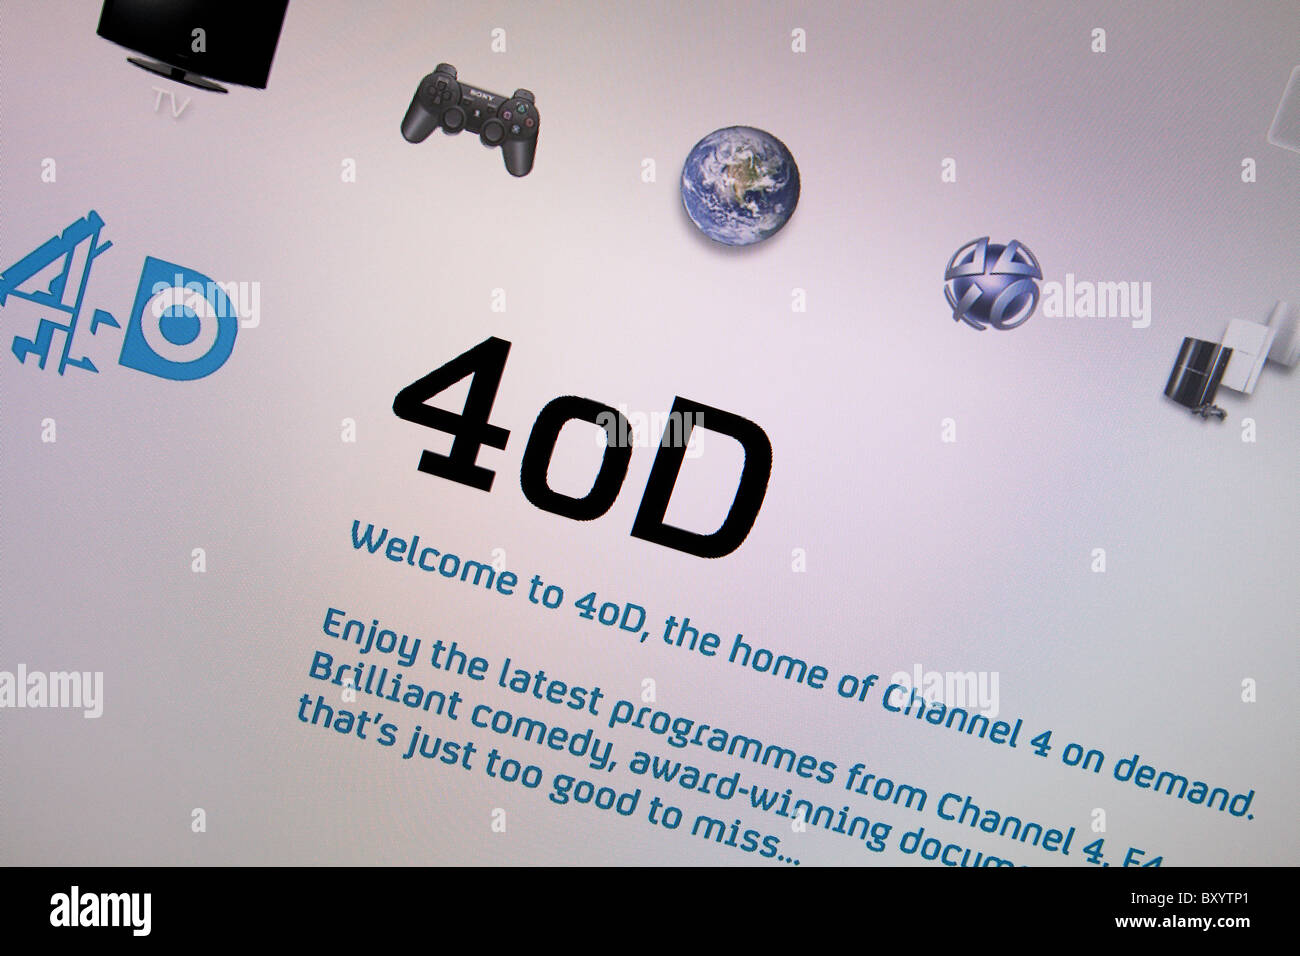 Channel 4 On Demand service 4OD as displayed on a HD High Definition ...